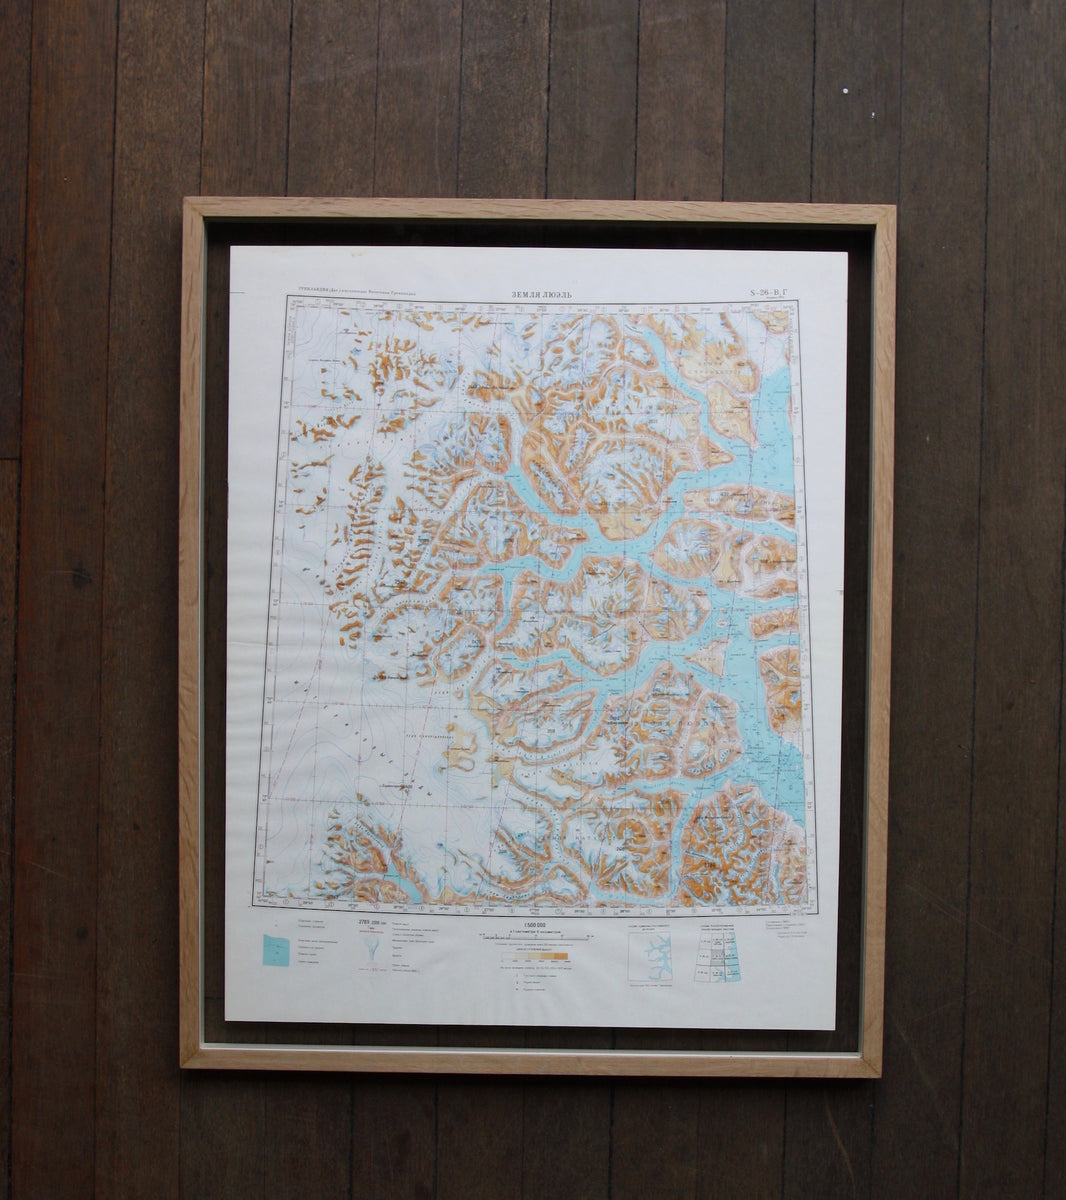 1960s Soviet Maps of Greenland - Image 7